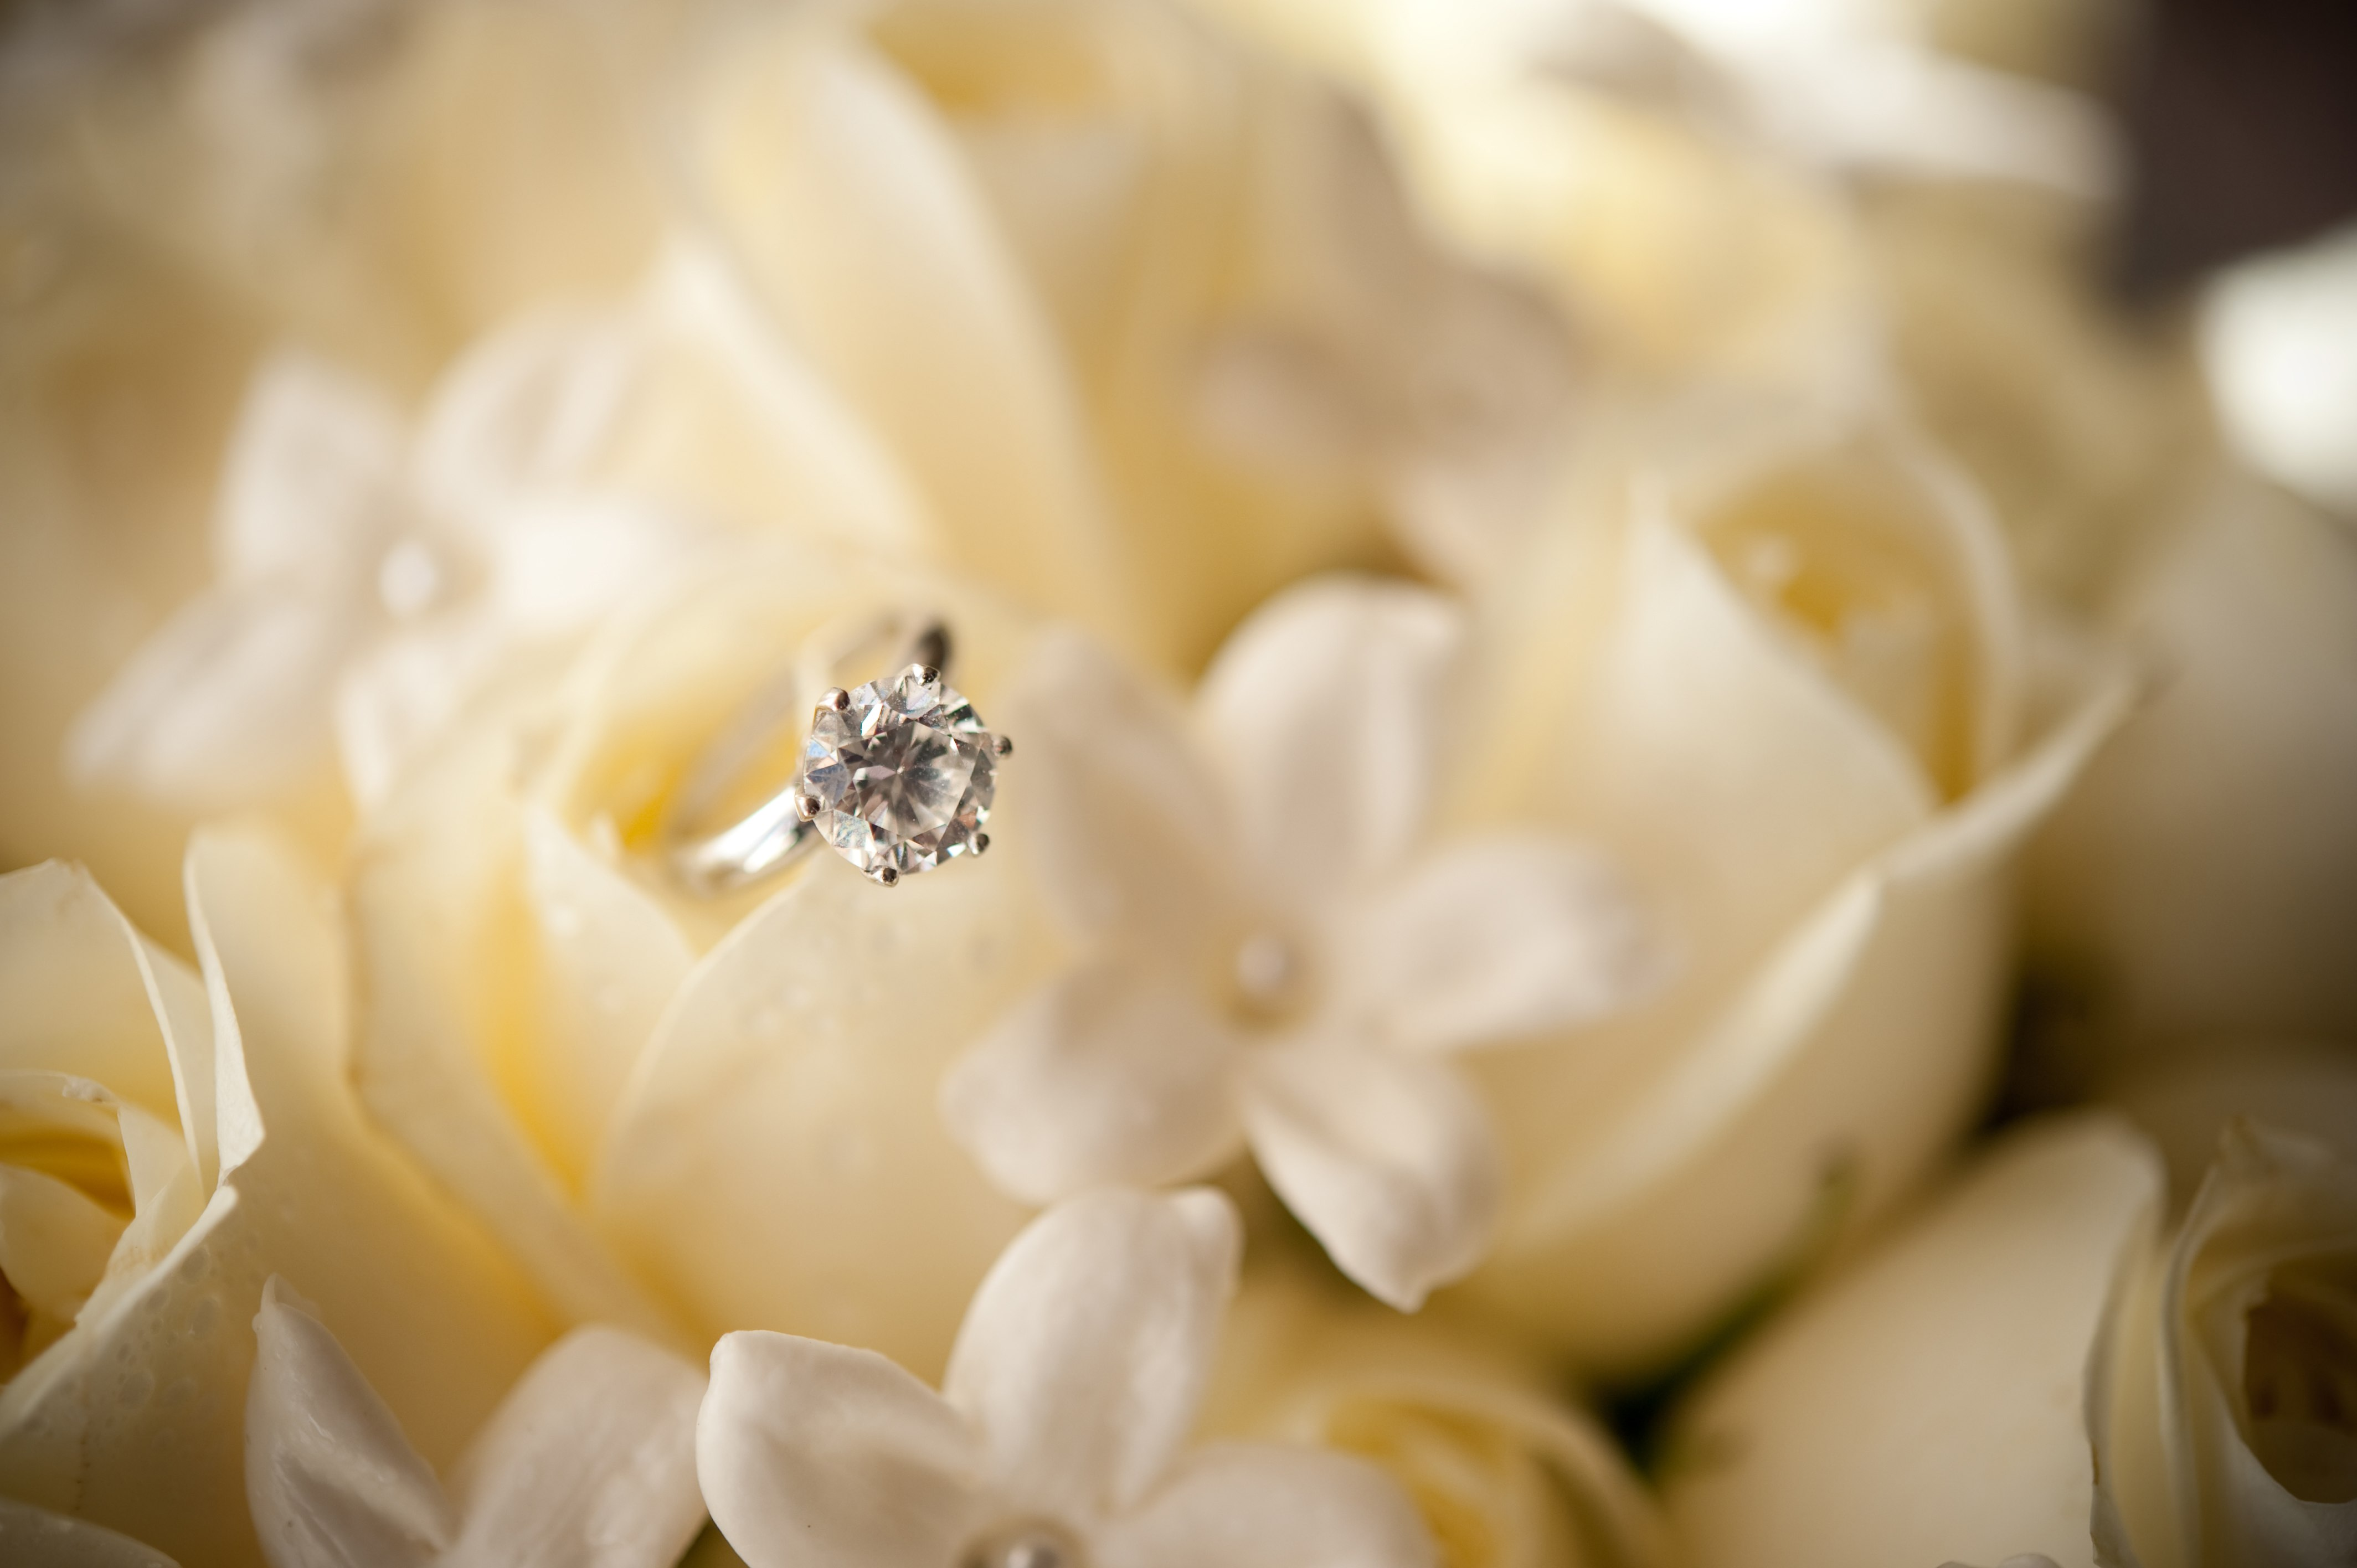 solitaire engagement ring with one diamond among white roses, buying the engagement ring after proposing